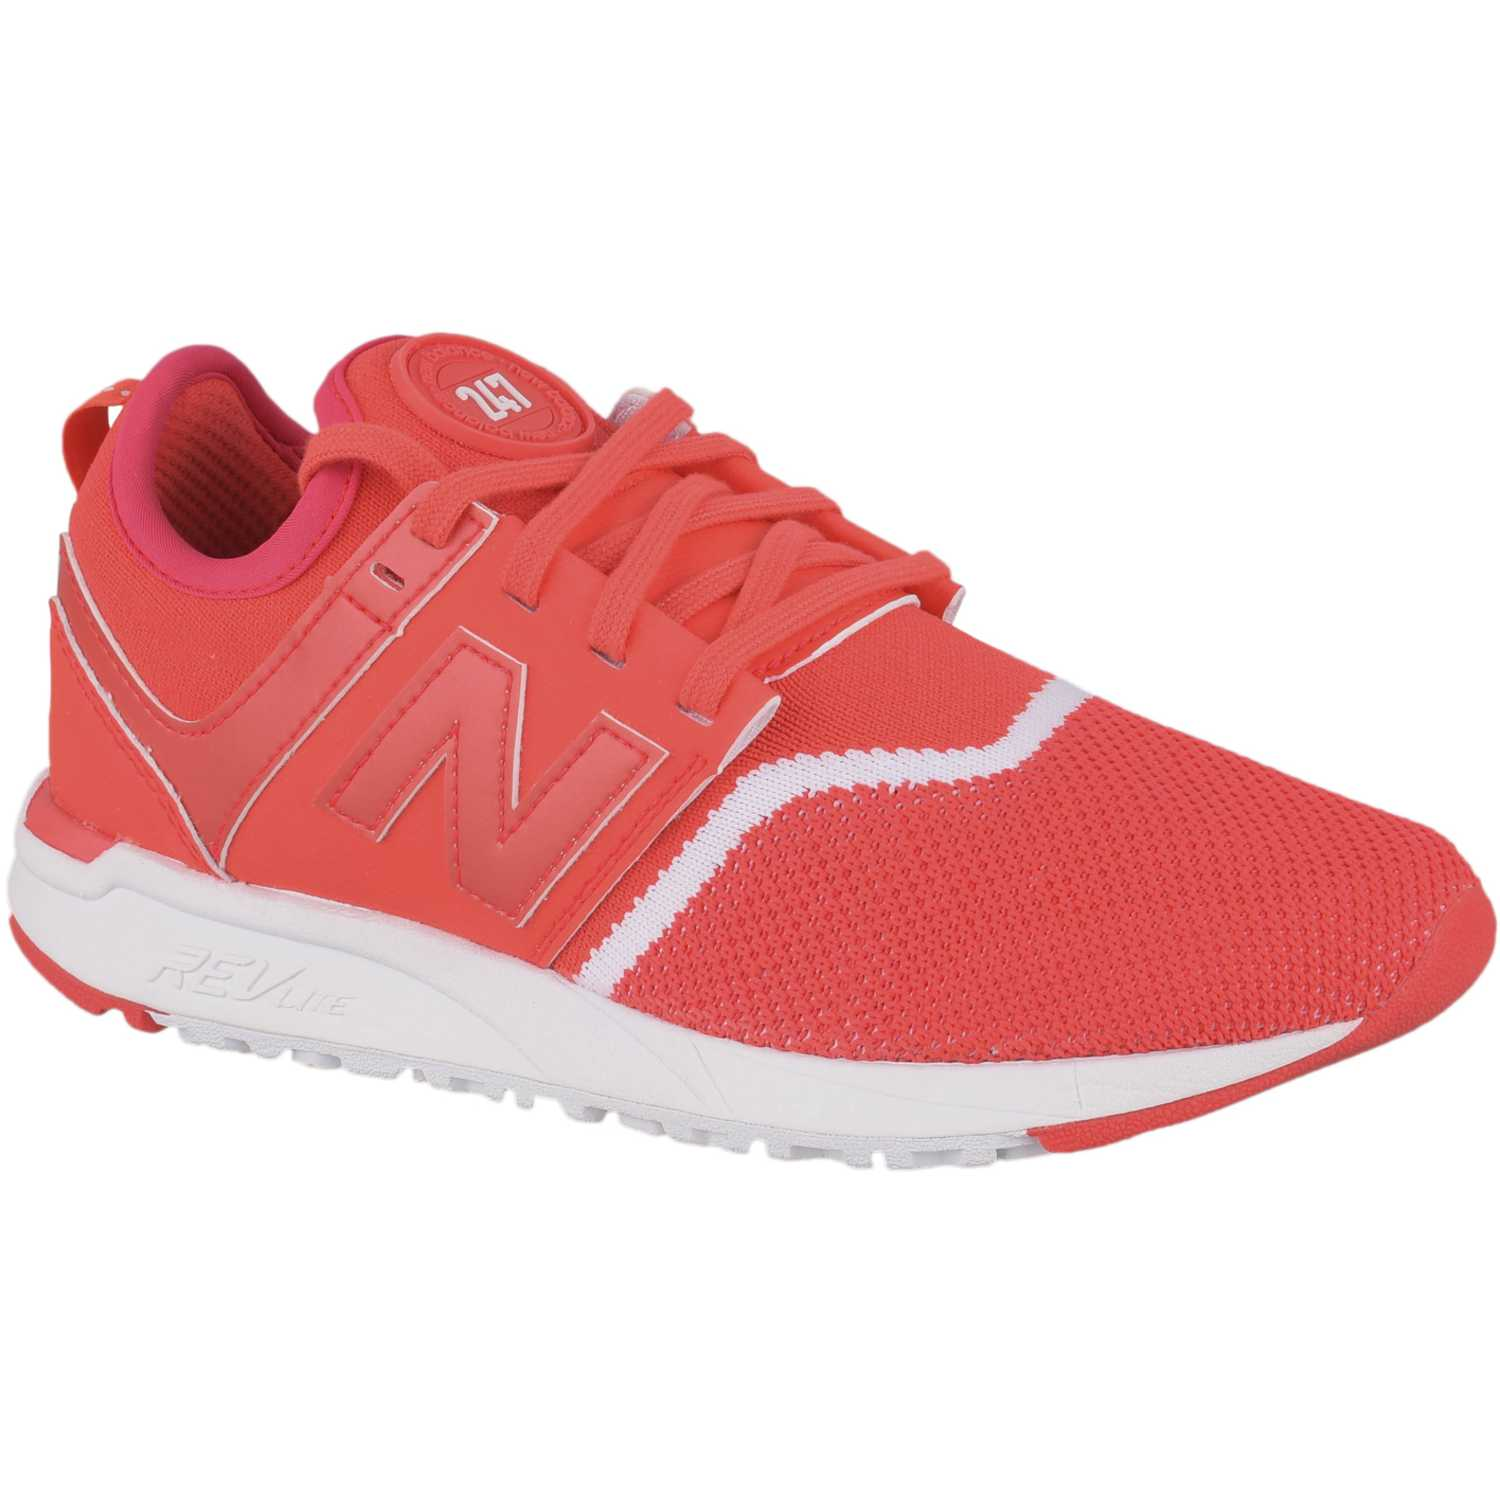 New Balance 247 Rojo / blanco Walking